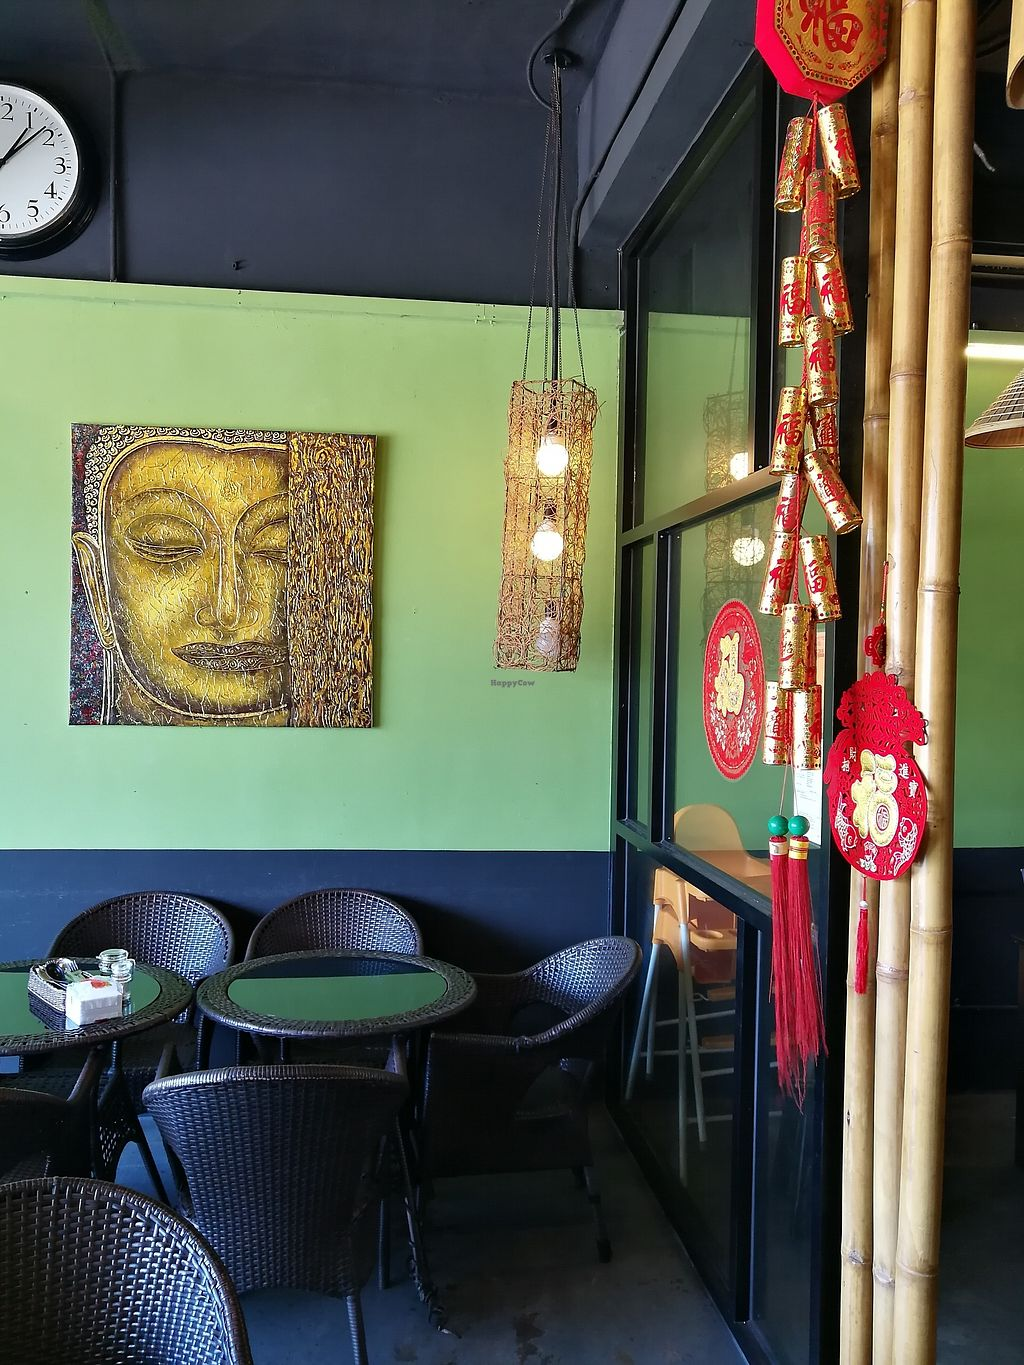 """Photo of Mimi Nguyen Cafe  by <a href=""""/members/profile/RawChefYin"""">RawChefYin</a> <br/>Mimi Nguyen's Vietgerian Restaurant <br/> April 8, 2018  - <a href='/contact/abuse/image/101766/382473'>Report</a>"""